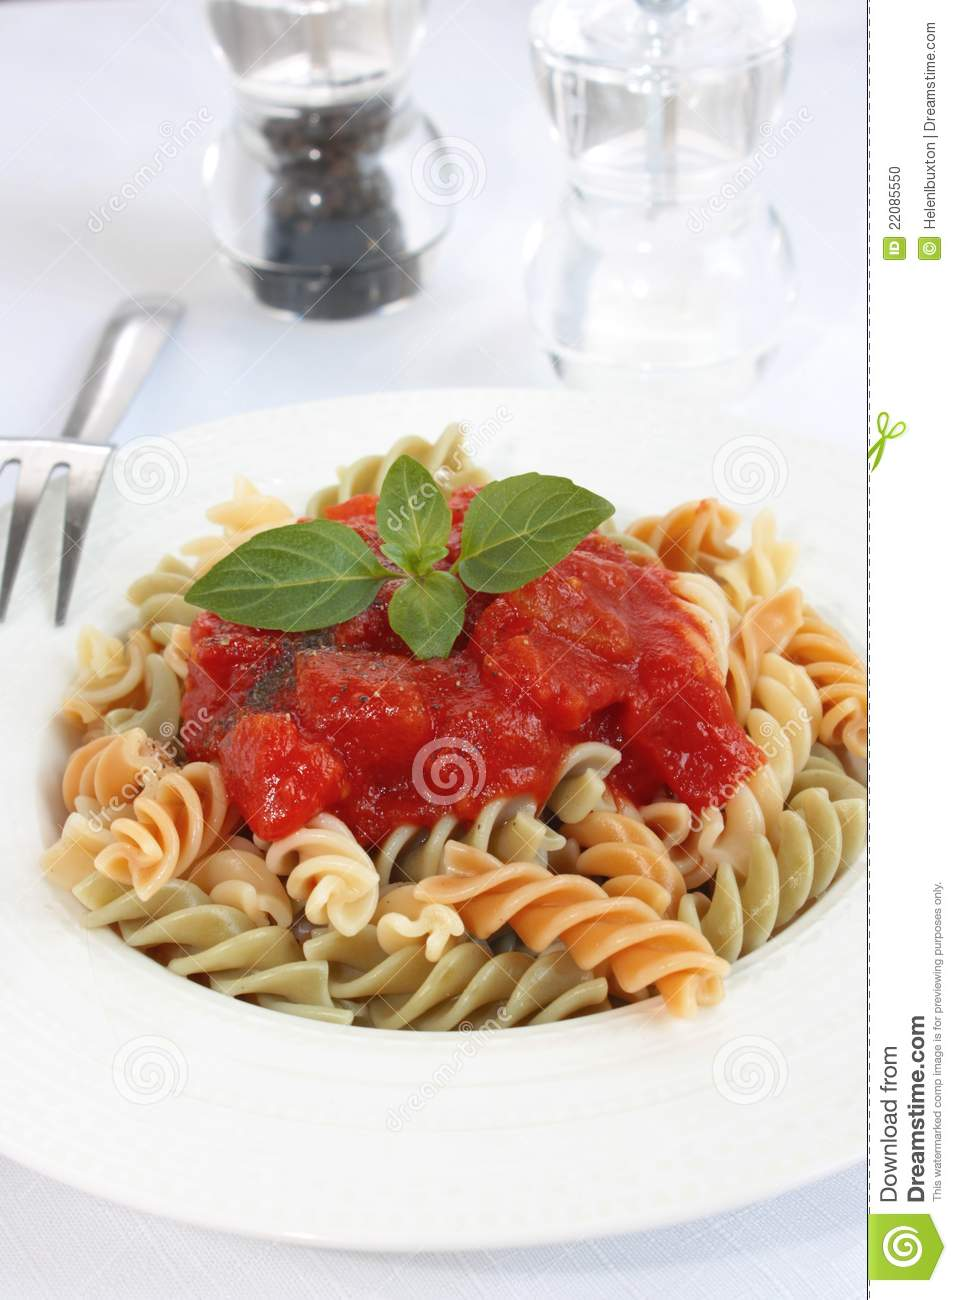 More similar stock images of ` Fusilli pasta with tomato sauce `